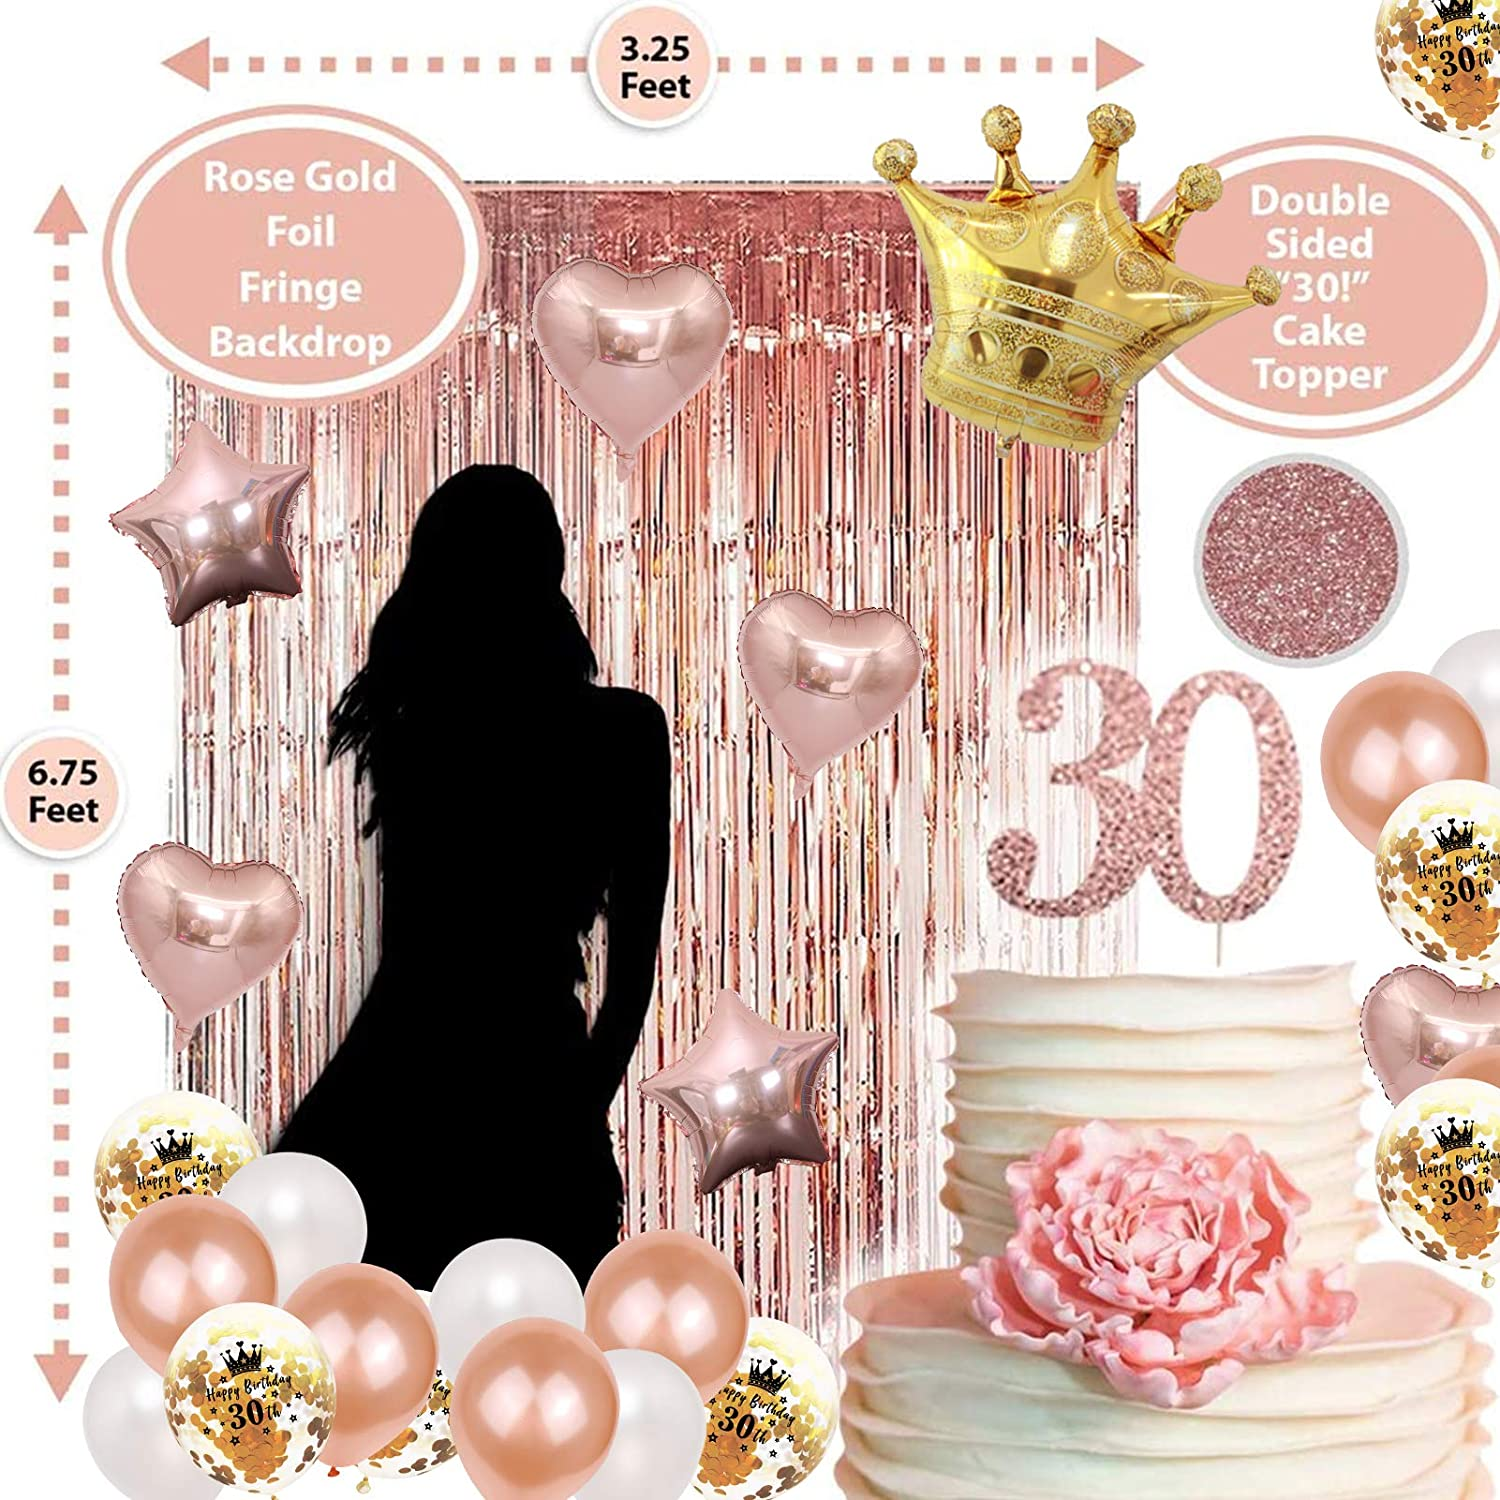 Crown Hat,Rose Gold Foil Fringe Curtain Hanging Swirls 30th Birthday Decorations Rose Gold,30th Birthday Party Supplies Boy Girl 30th Balloons Numbers,Rose Gold Balloons